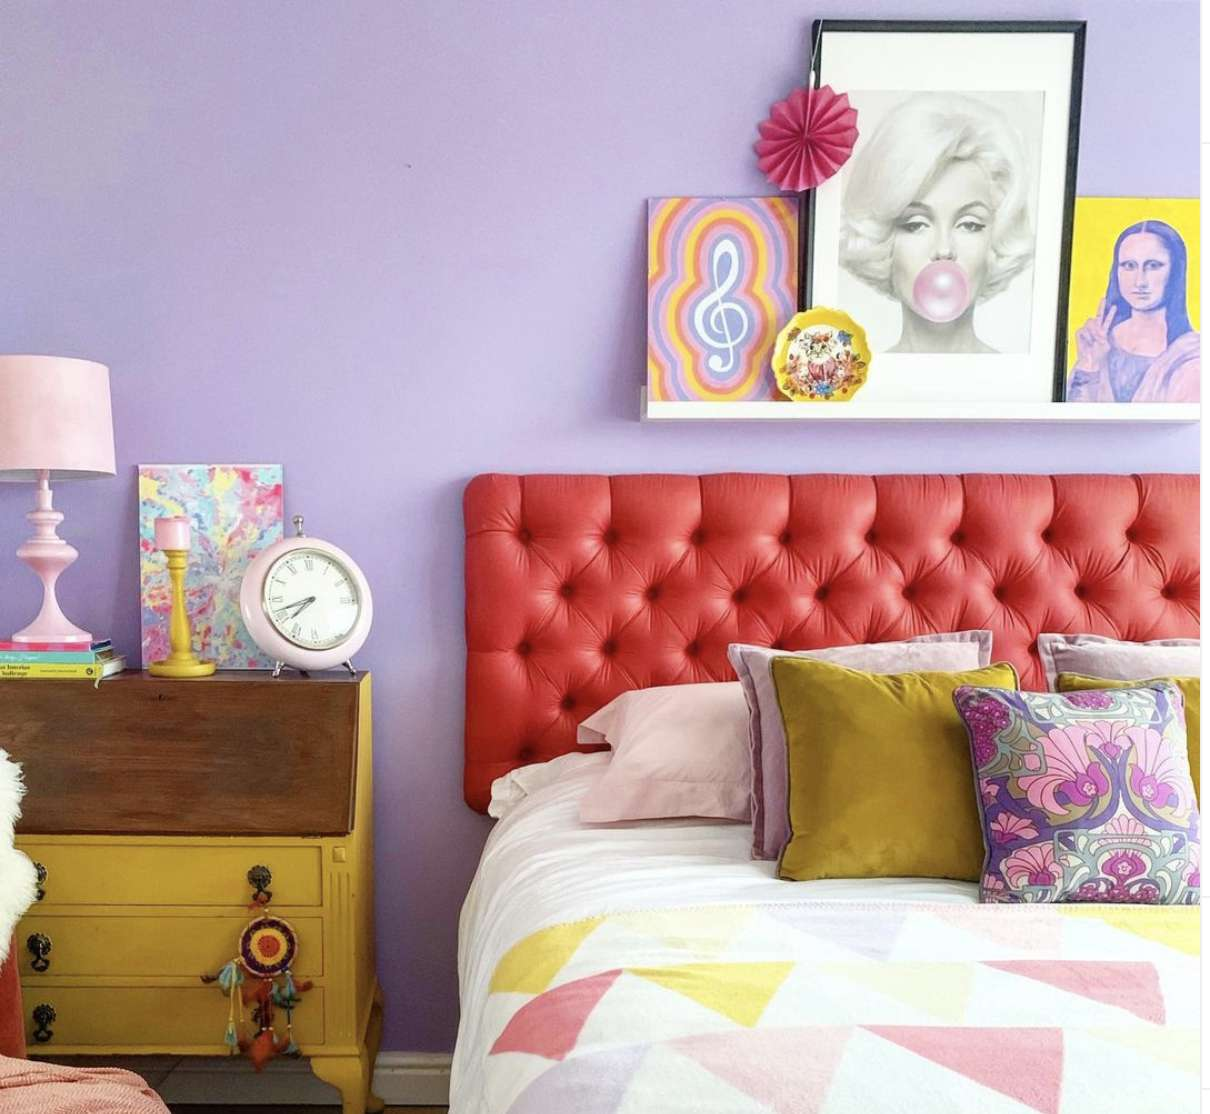 brightly colored eclectic bedroom with purple walls, triangle pattern comforter, vintage style yellow dresser